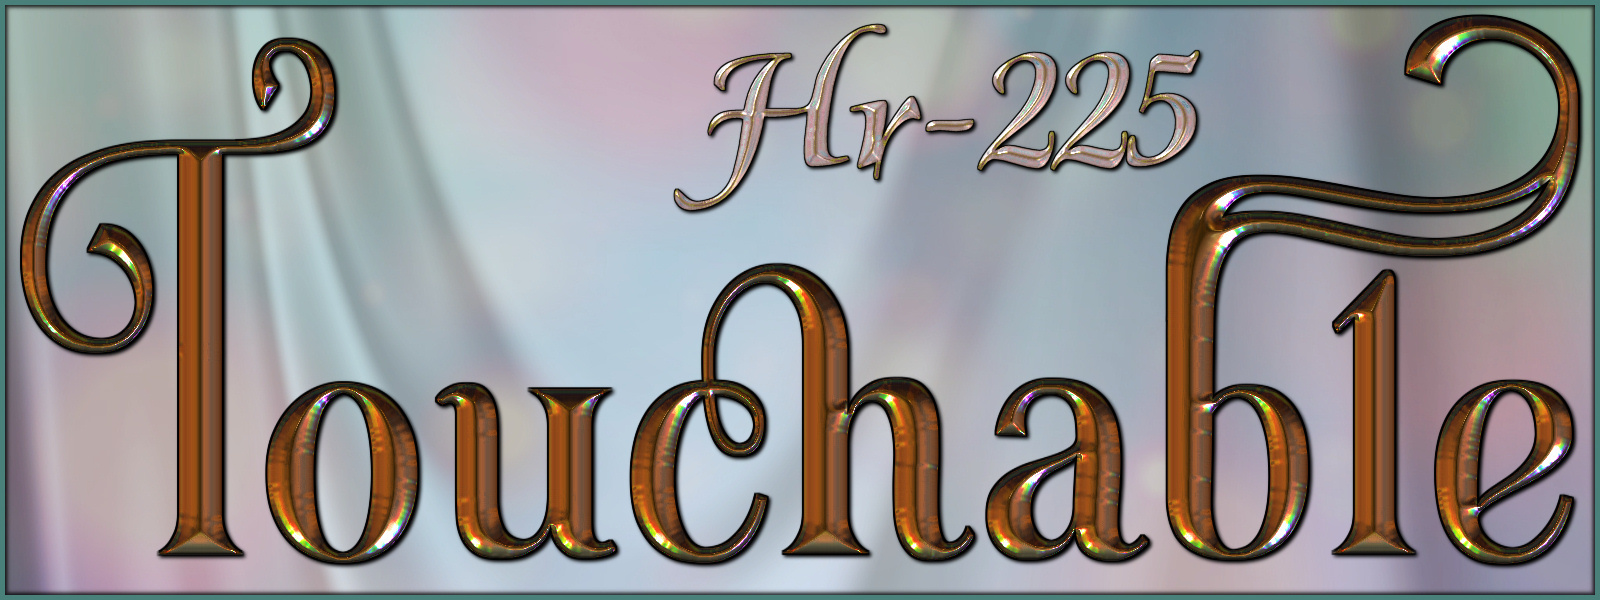 Touchable Hr-225